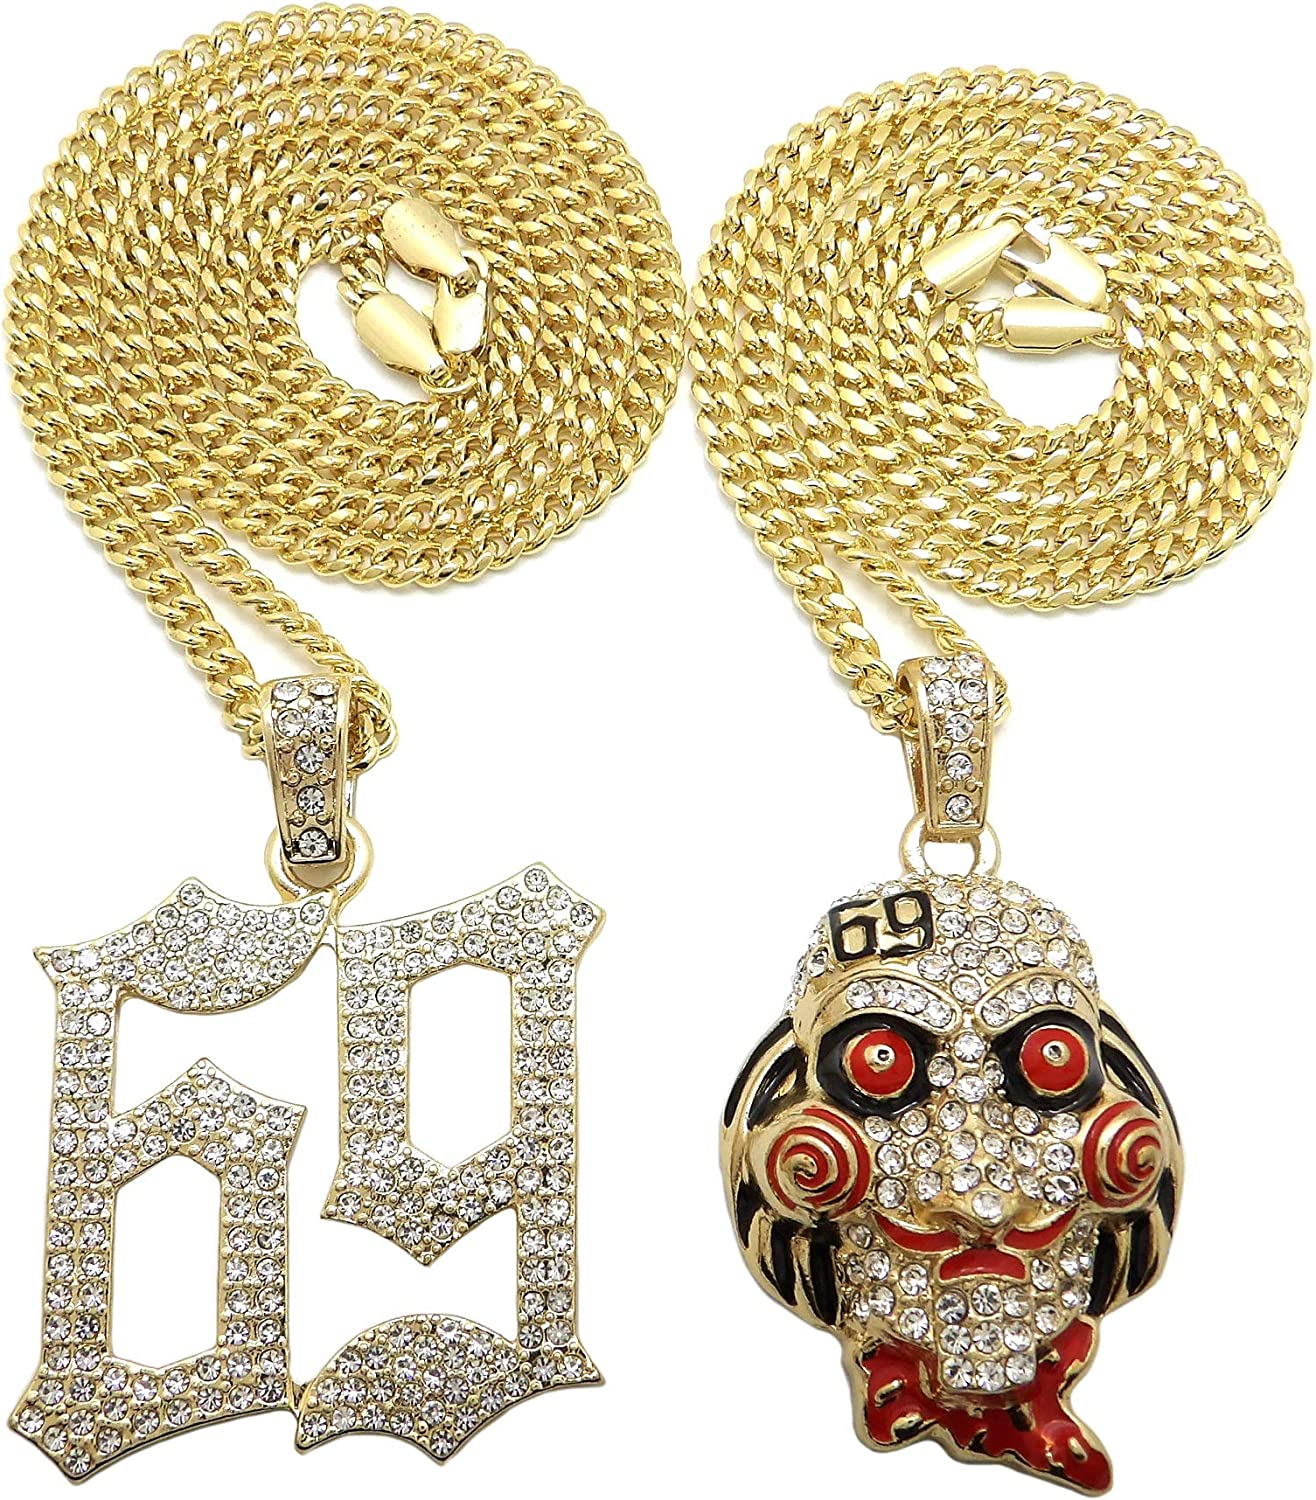 BLINGFACTORY Hip Hop Iced Industry No. 1 Gold Inspired Saw 69 Pendant Free shipping New Plated